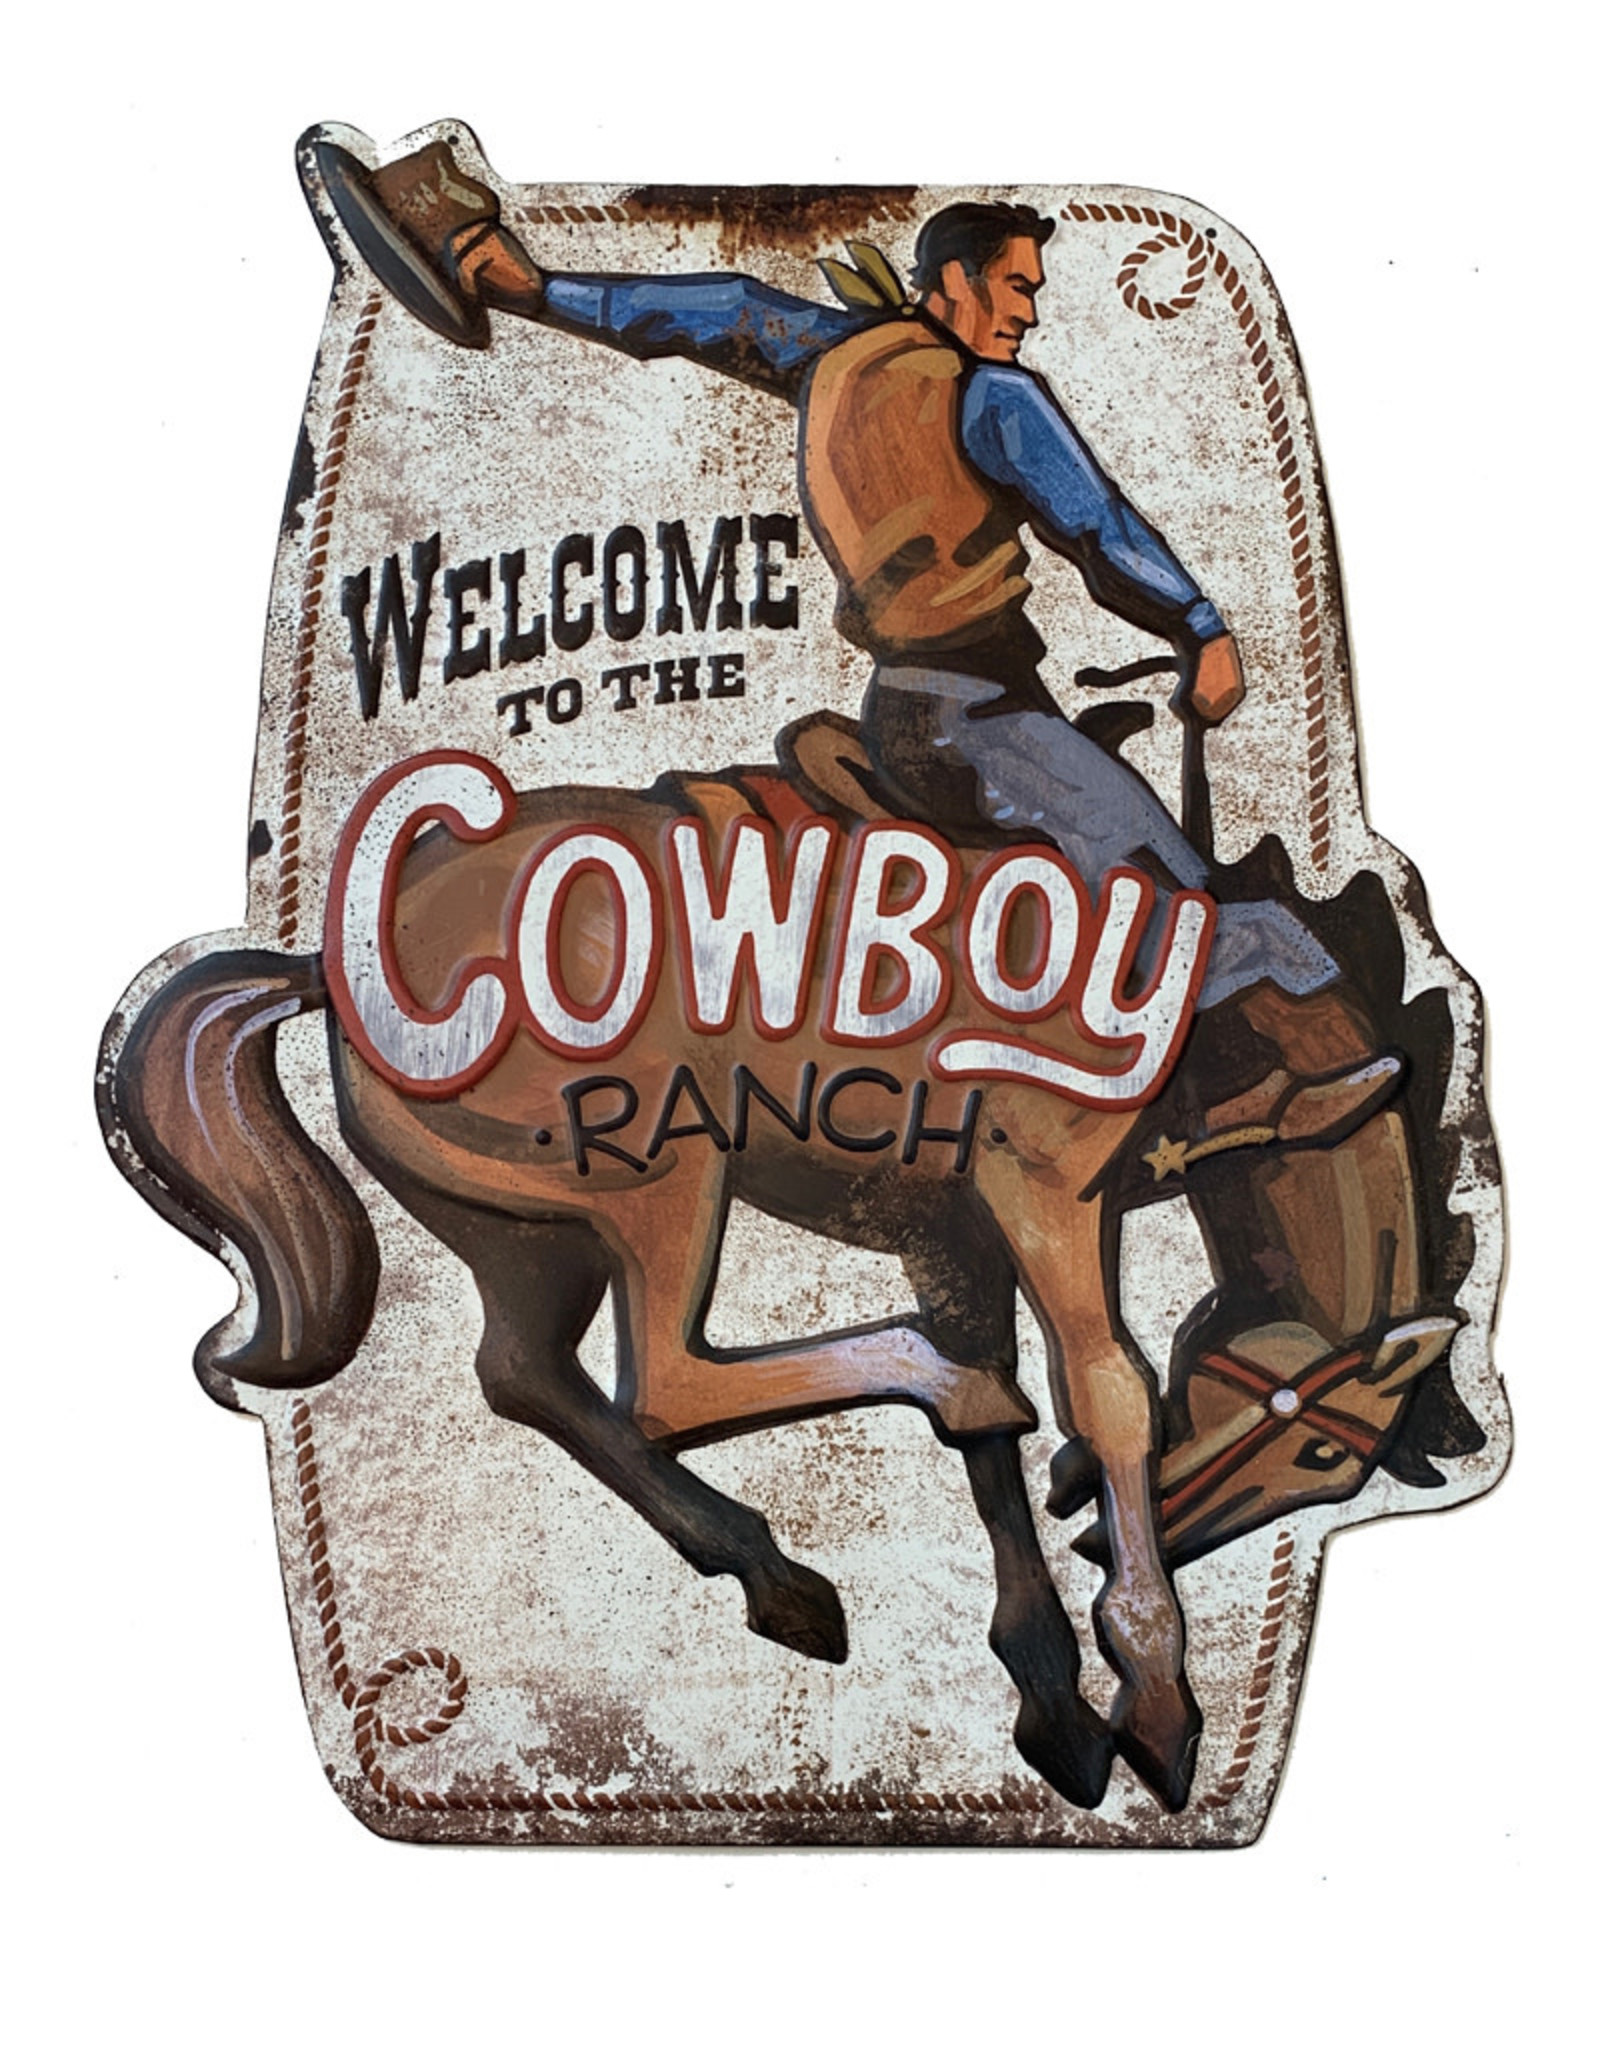 Welcome to the cowboy ranch ( Embossed Metal Plate )